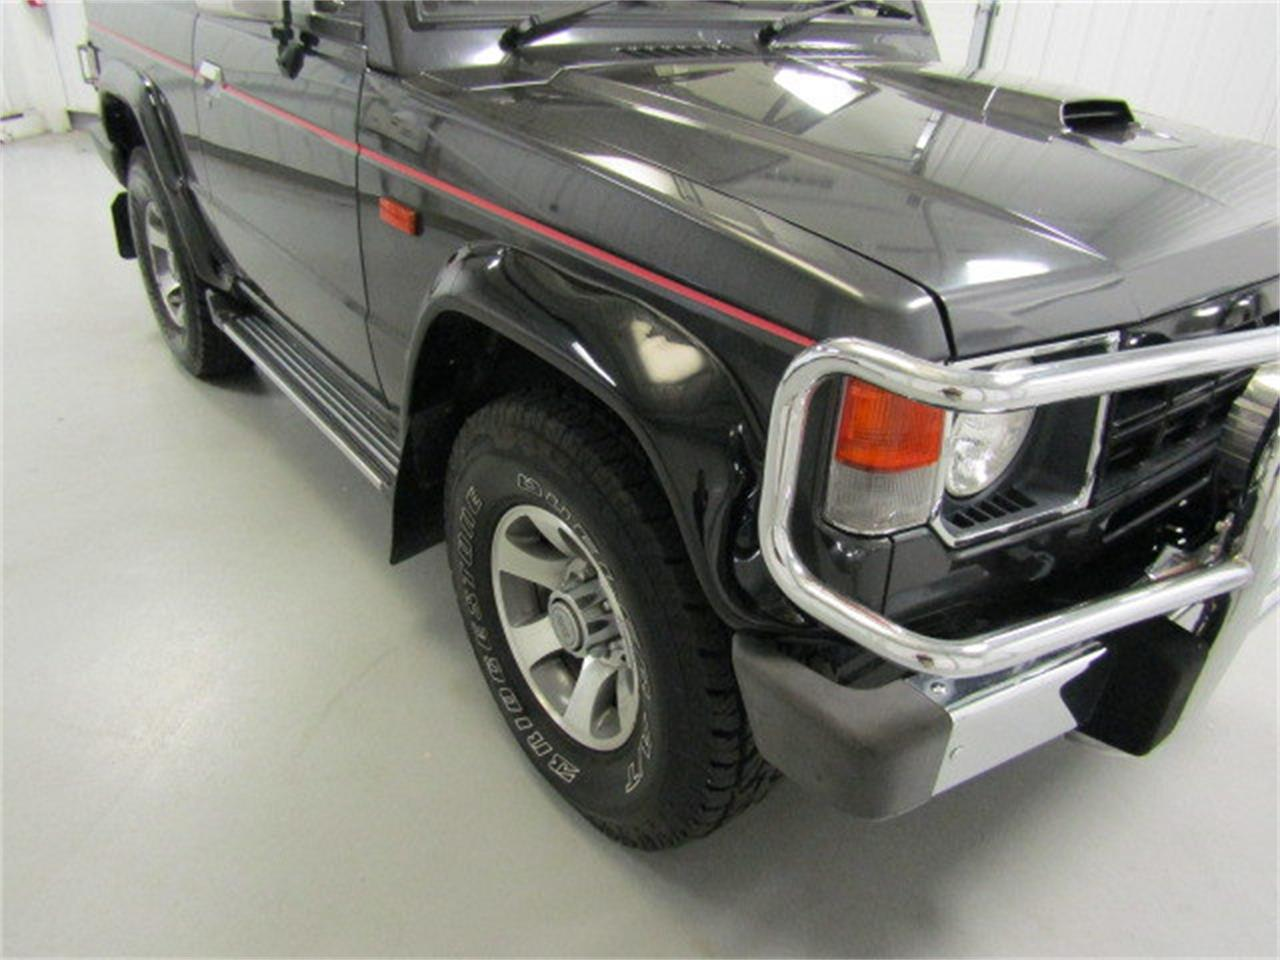 Large Picture of 1989 Pajero located in Virginia - $8,900.00 Offered by Duncan Imports & Classic Cars - LI1X